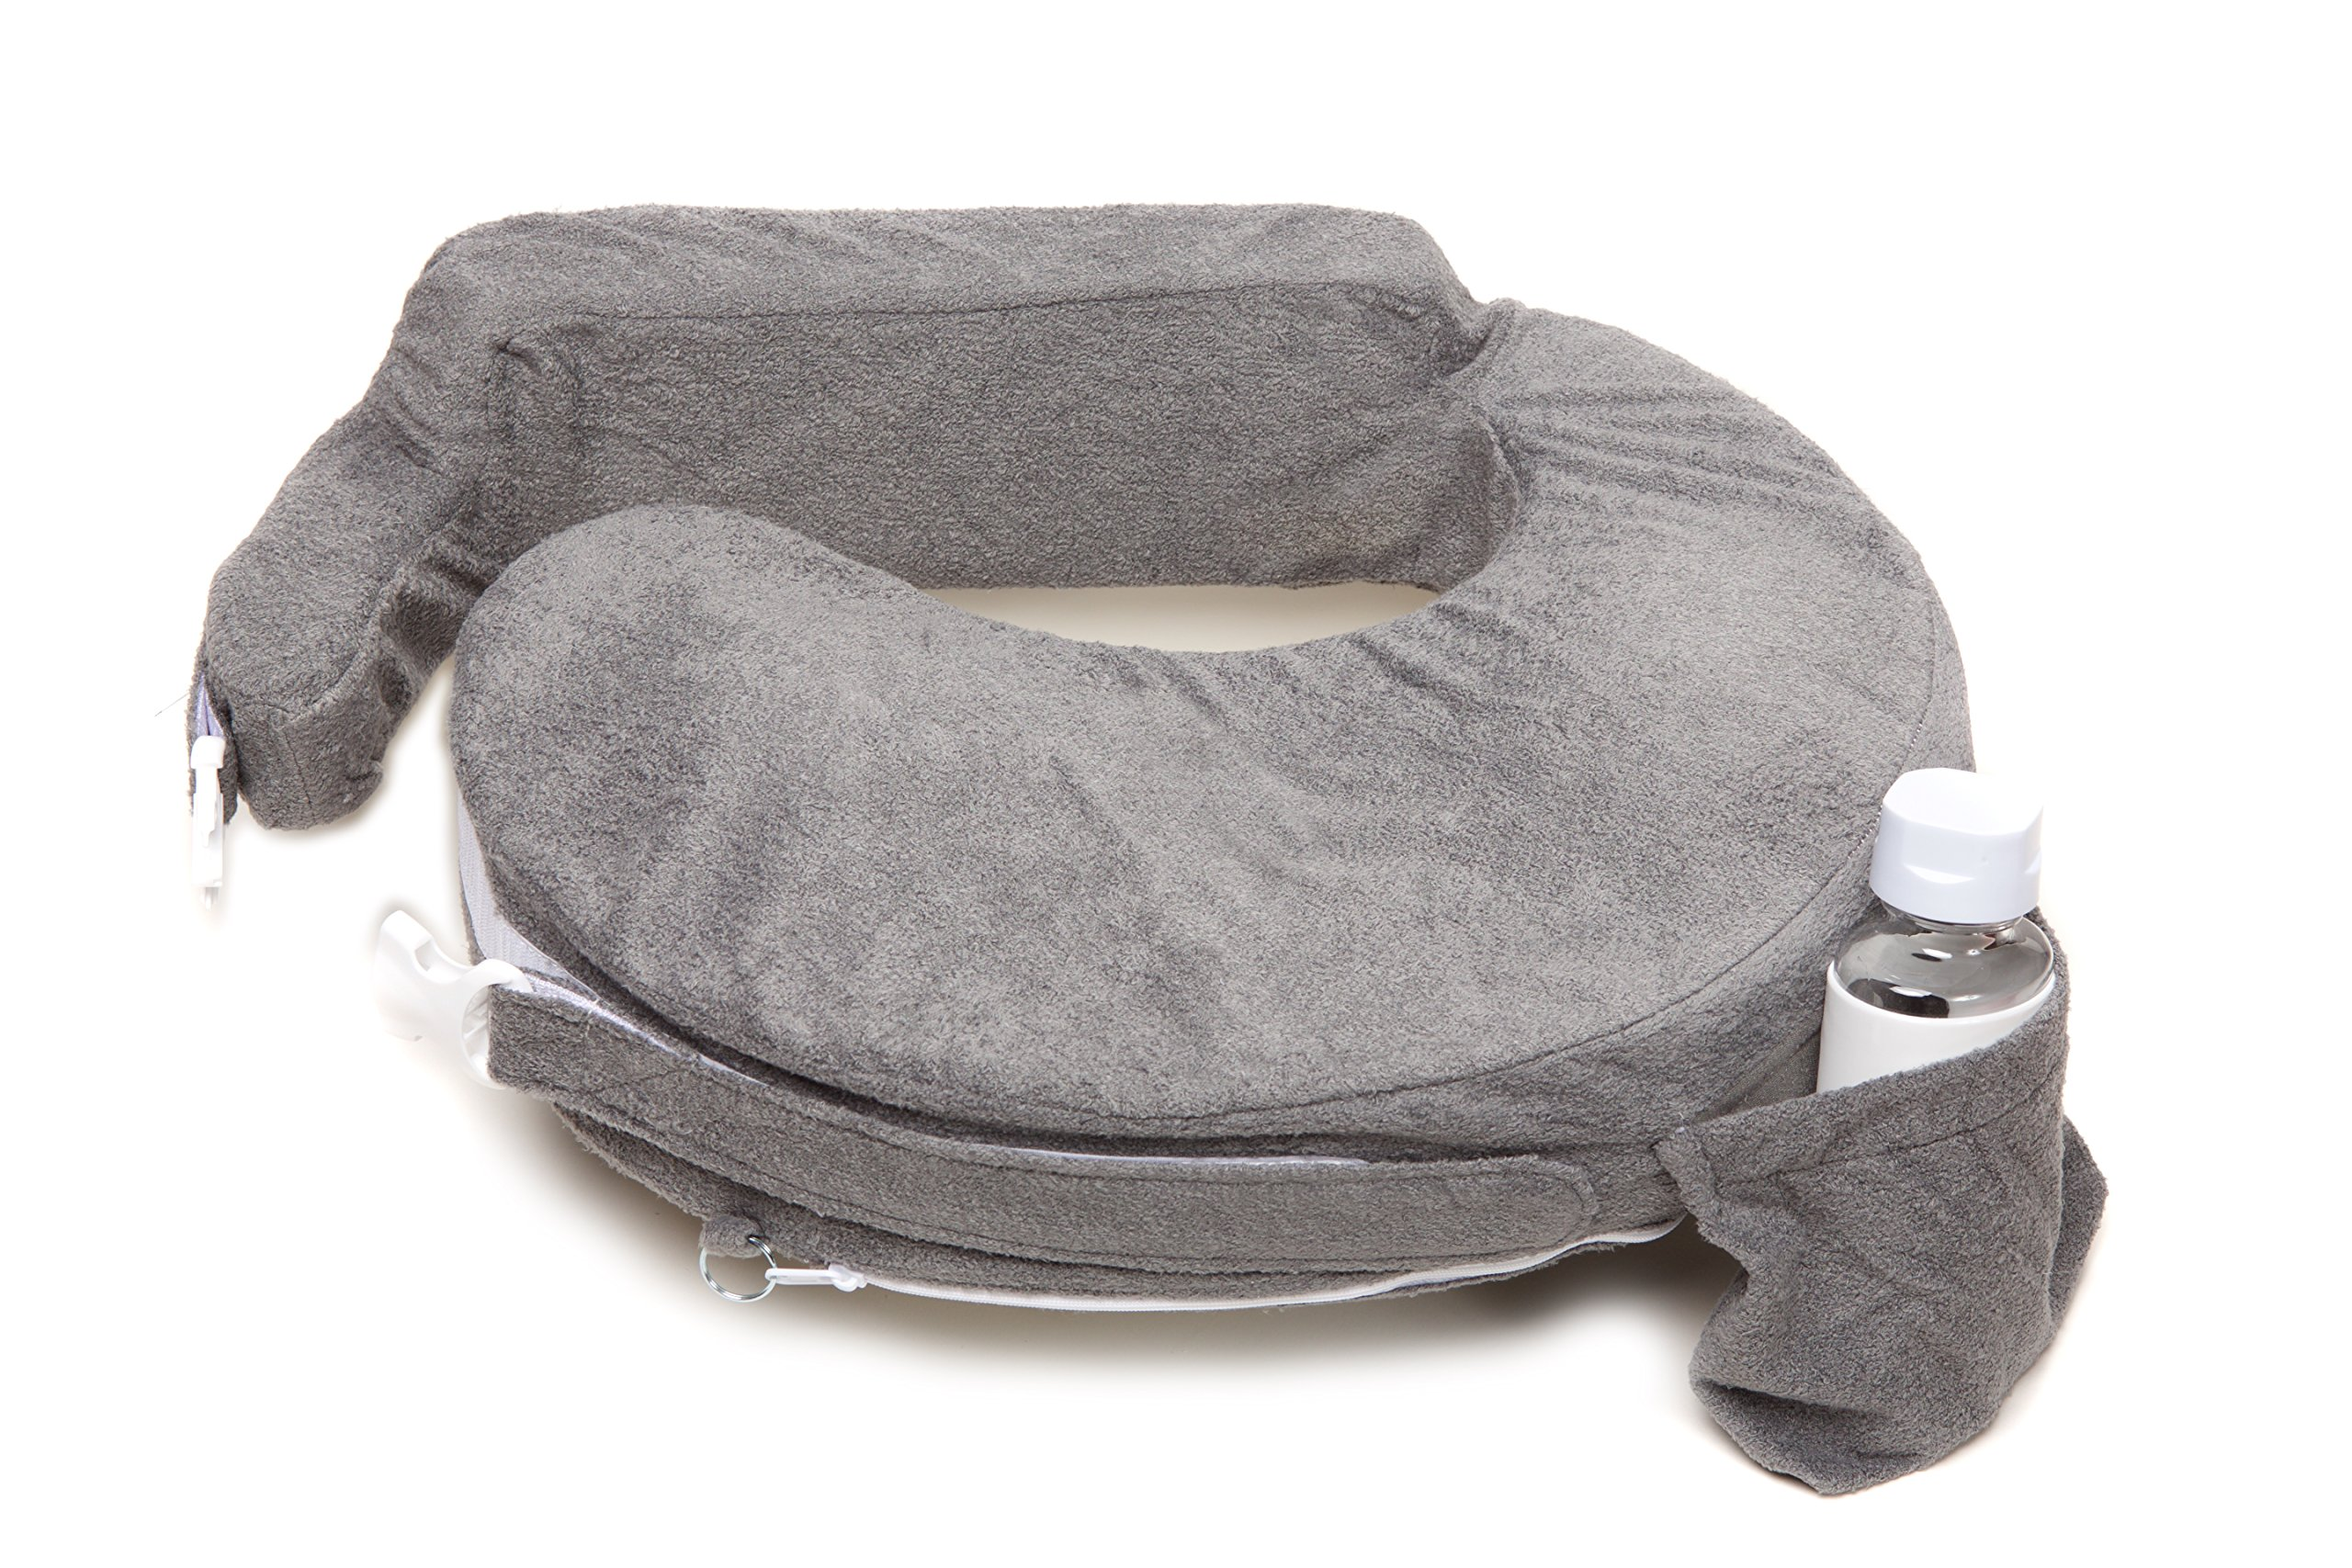 My Brest Friend Nursing Pillow Deluxe Slipcover - Machine Washable Breastfeeding Cushion Cover - Pillow not Included, Evening (Dark Grey) by My Brest Friend